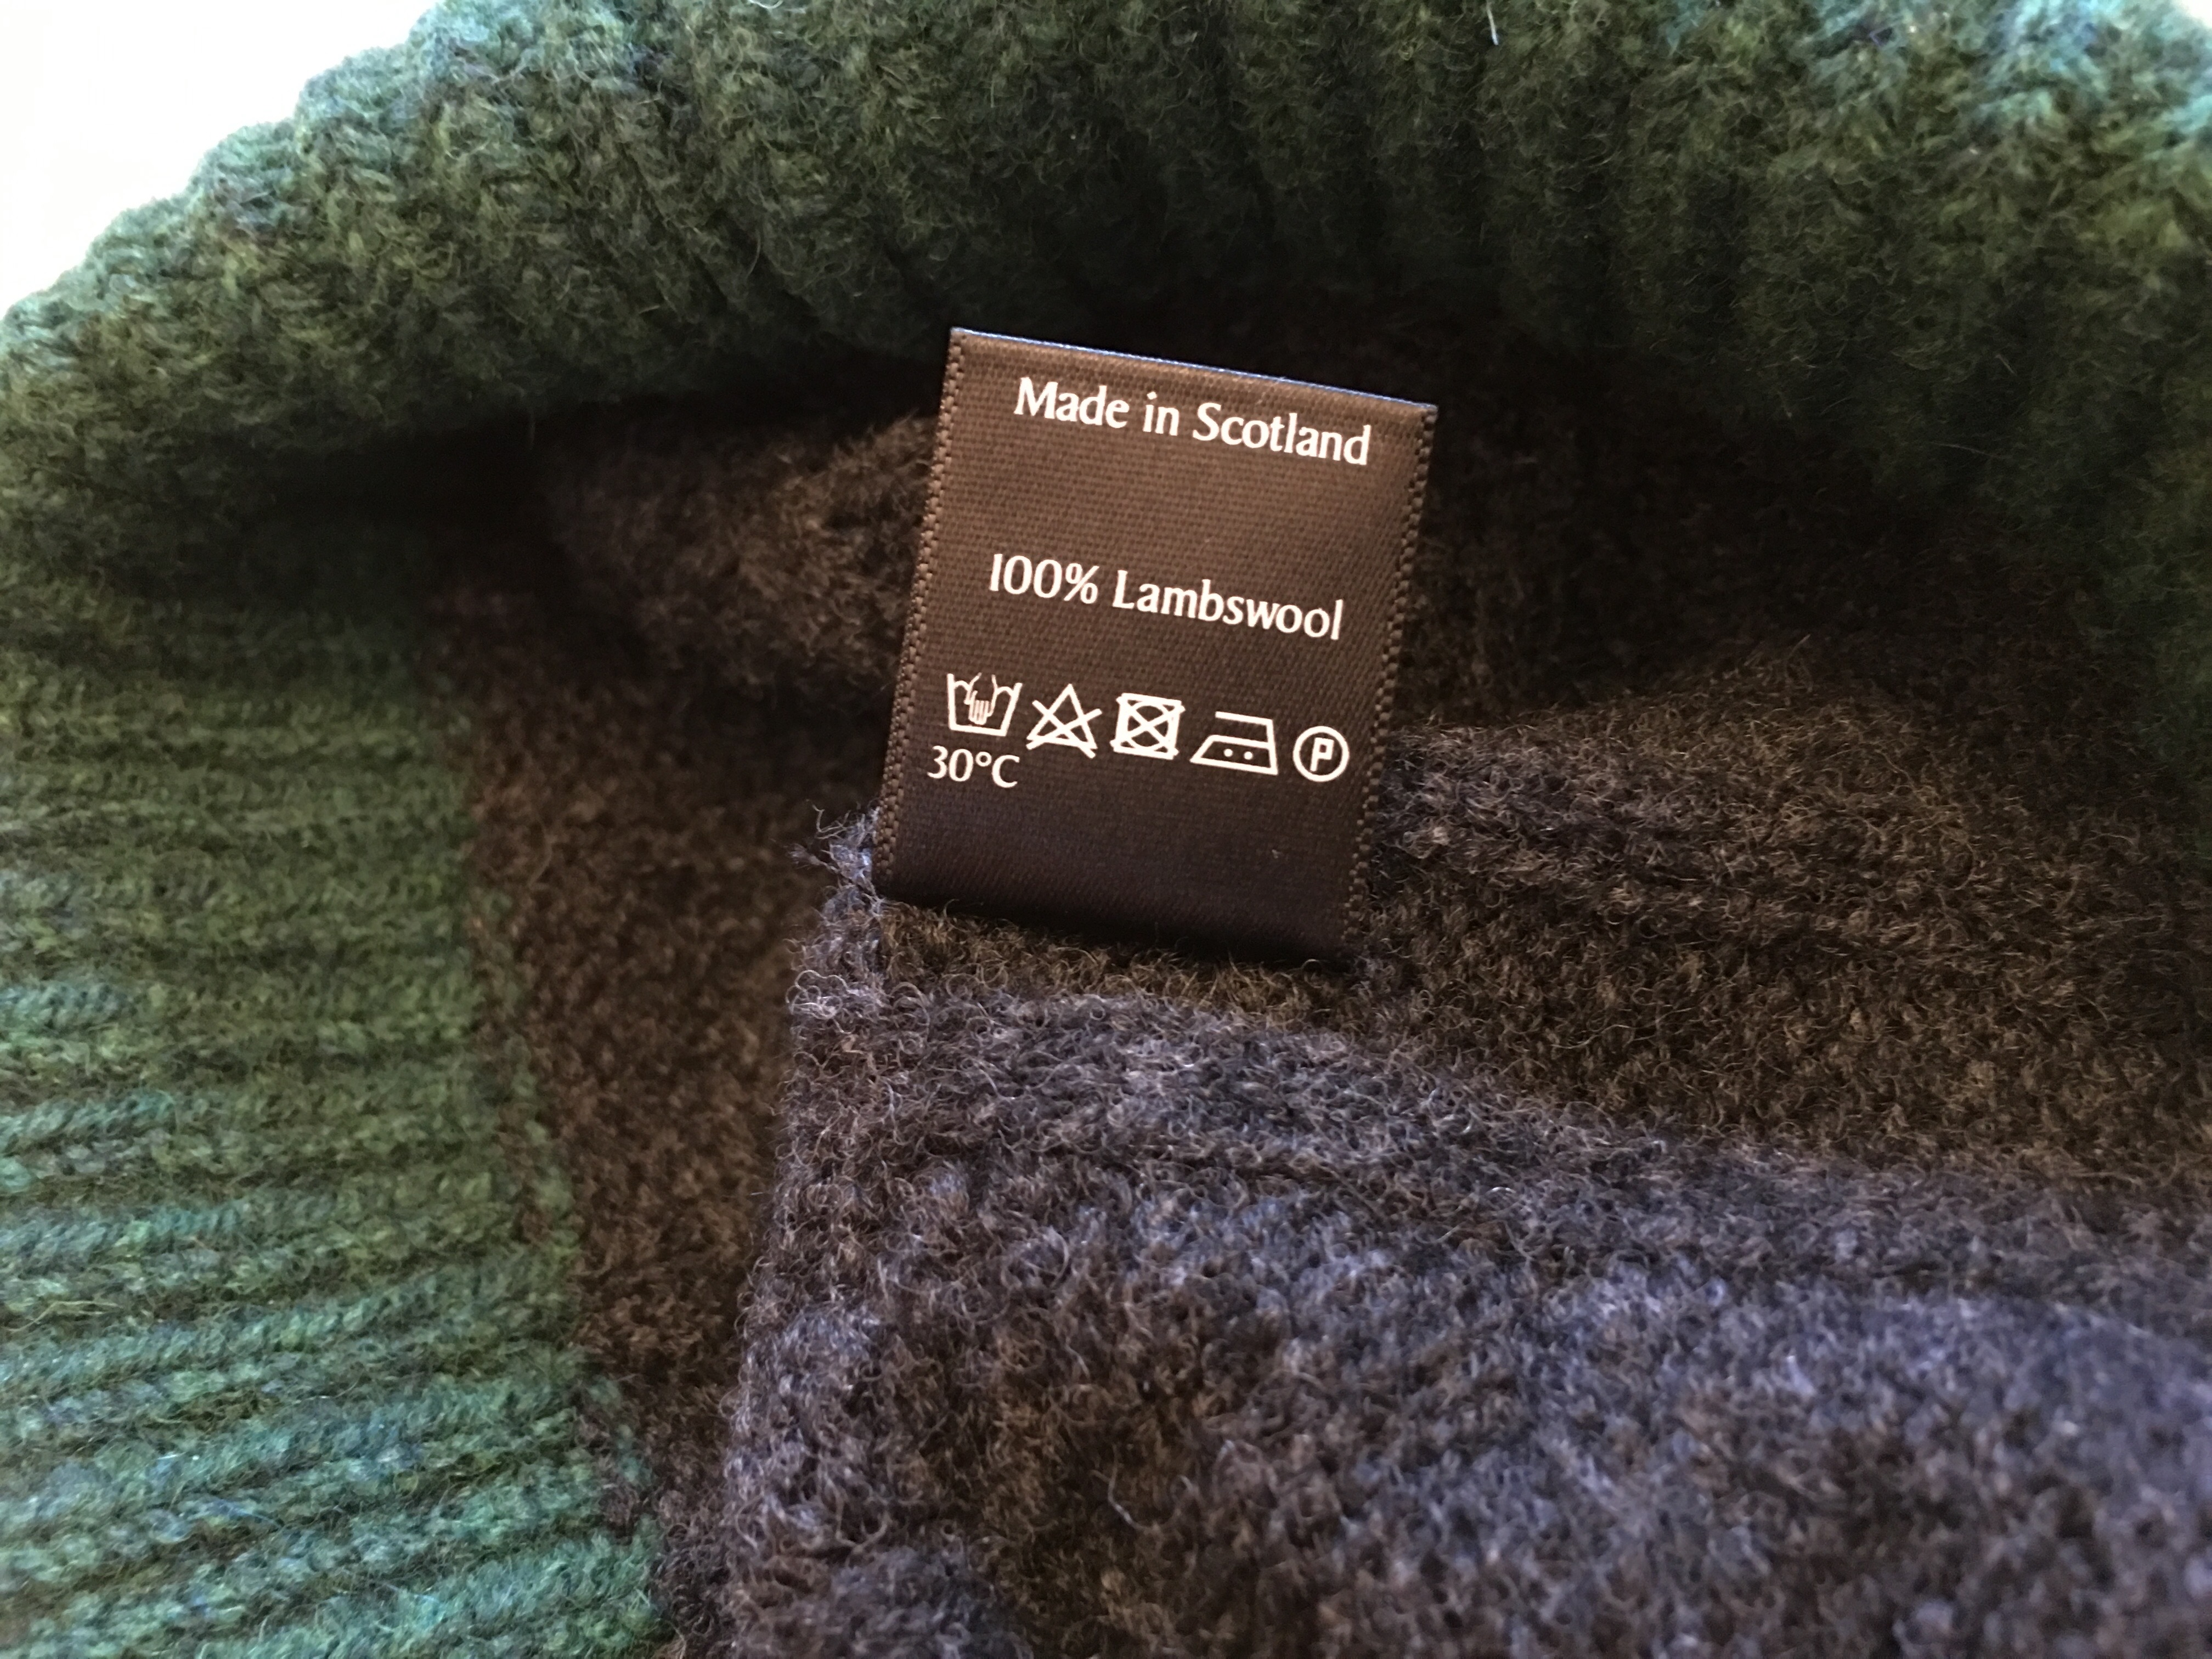 a80f865b Made in Scotland. Photograph by author 1 October 2018. Made in Scotland  label view.